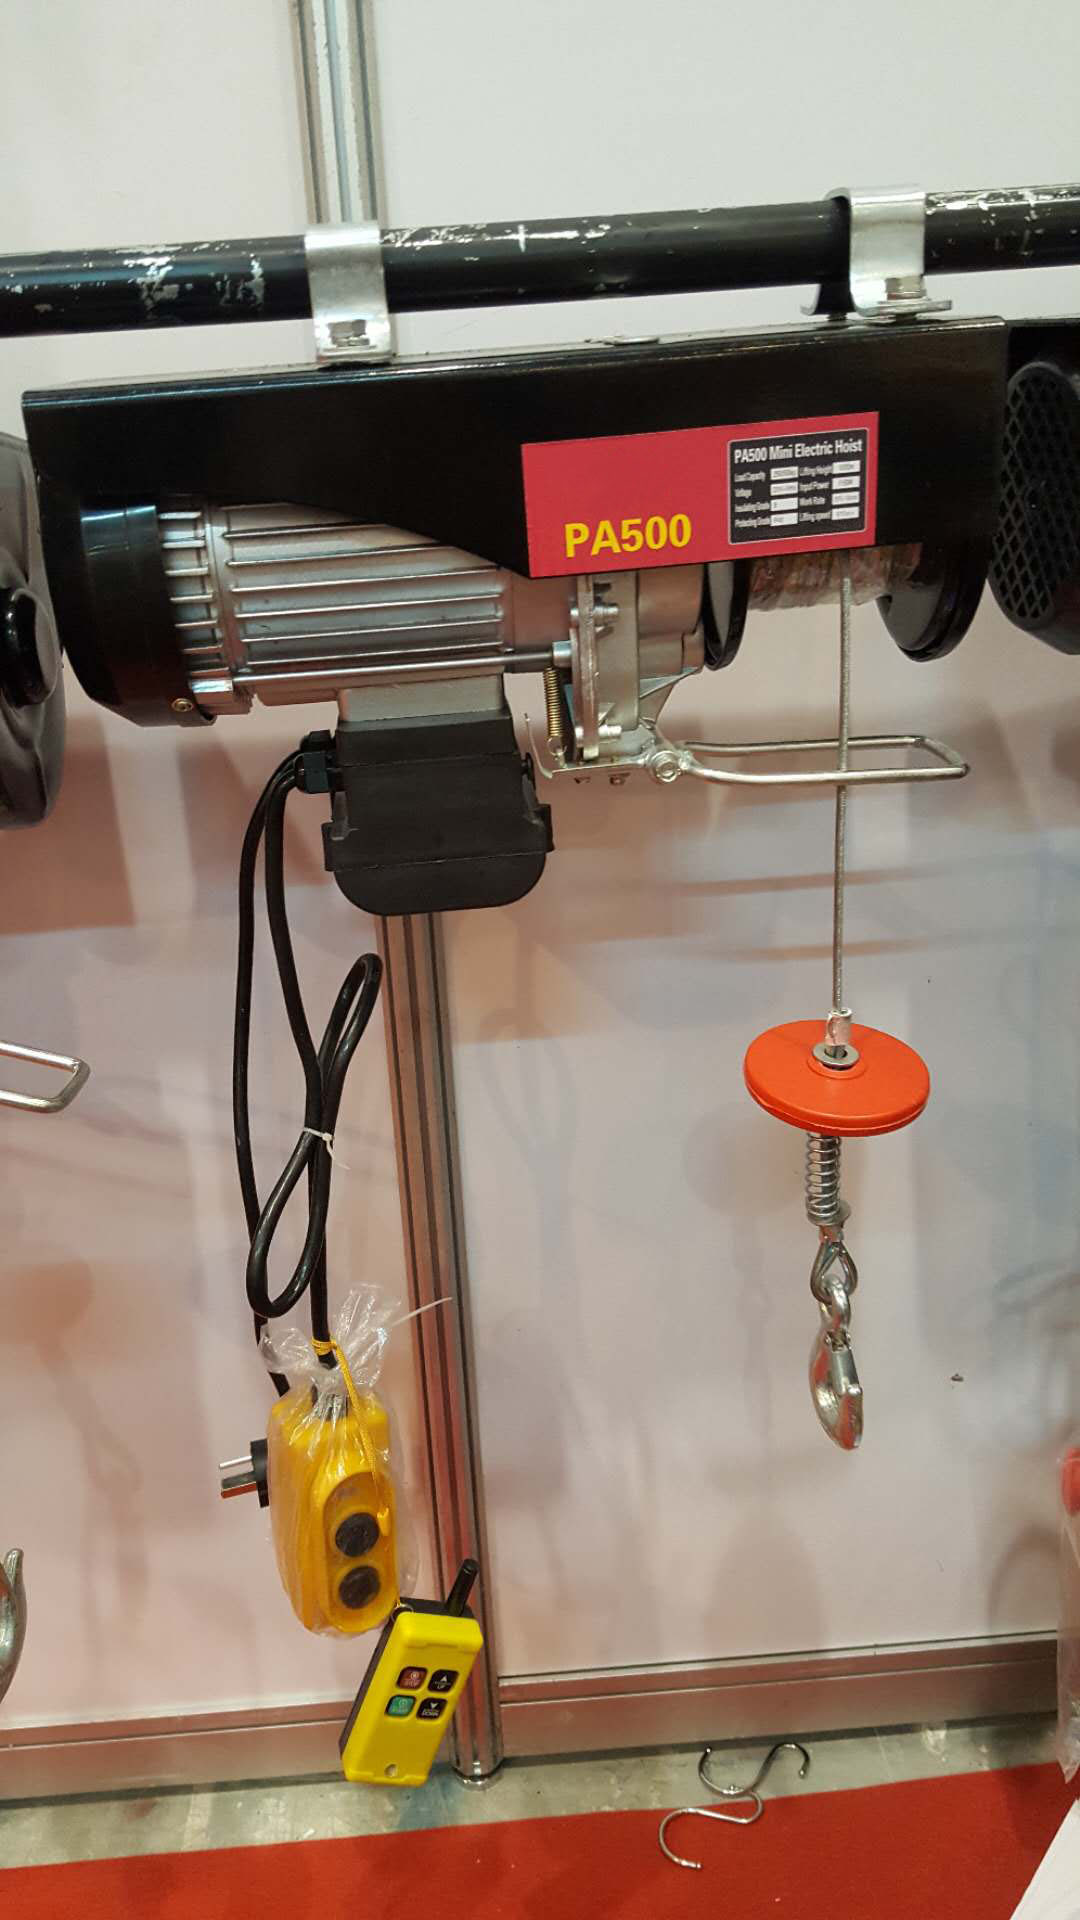 Remote control for fixed type PA hoist1.jpg